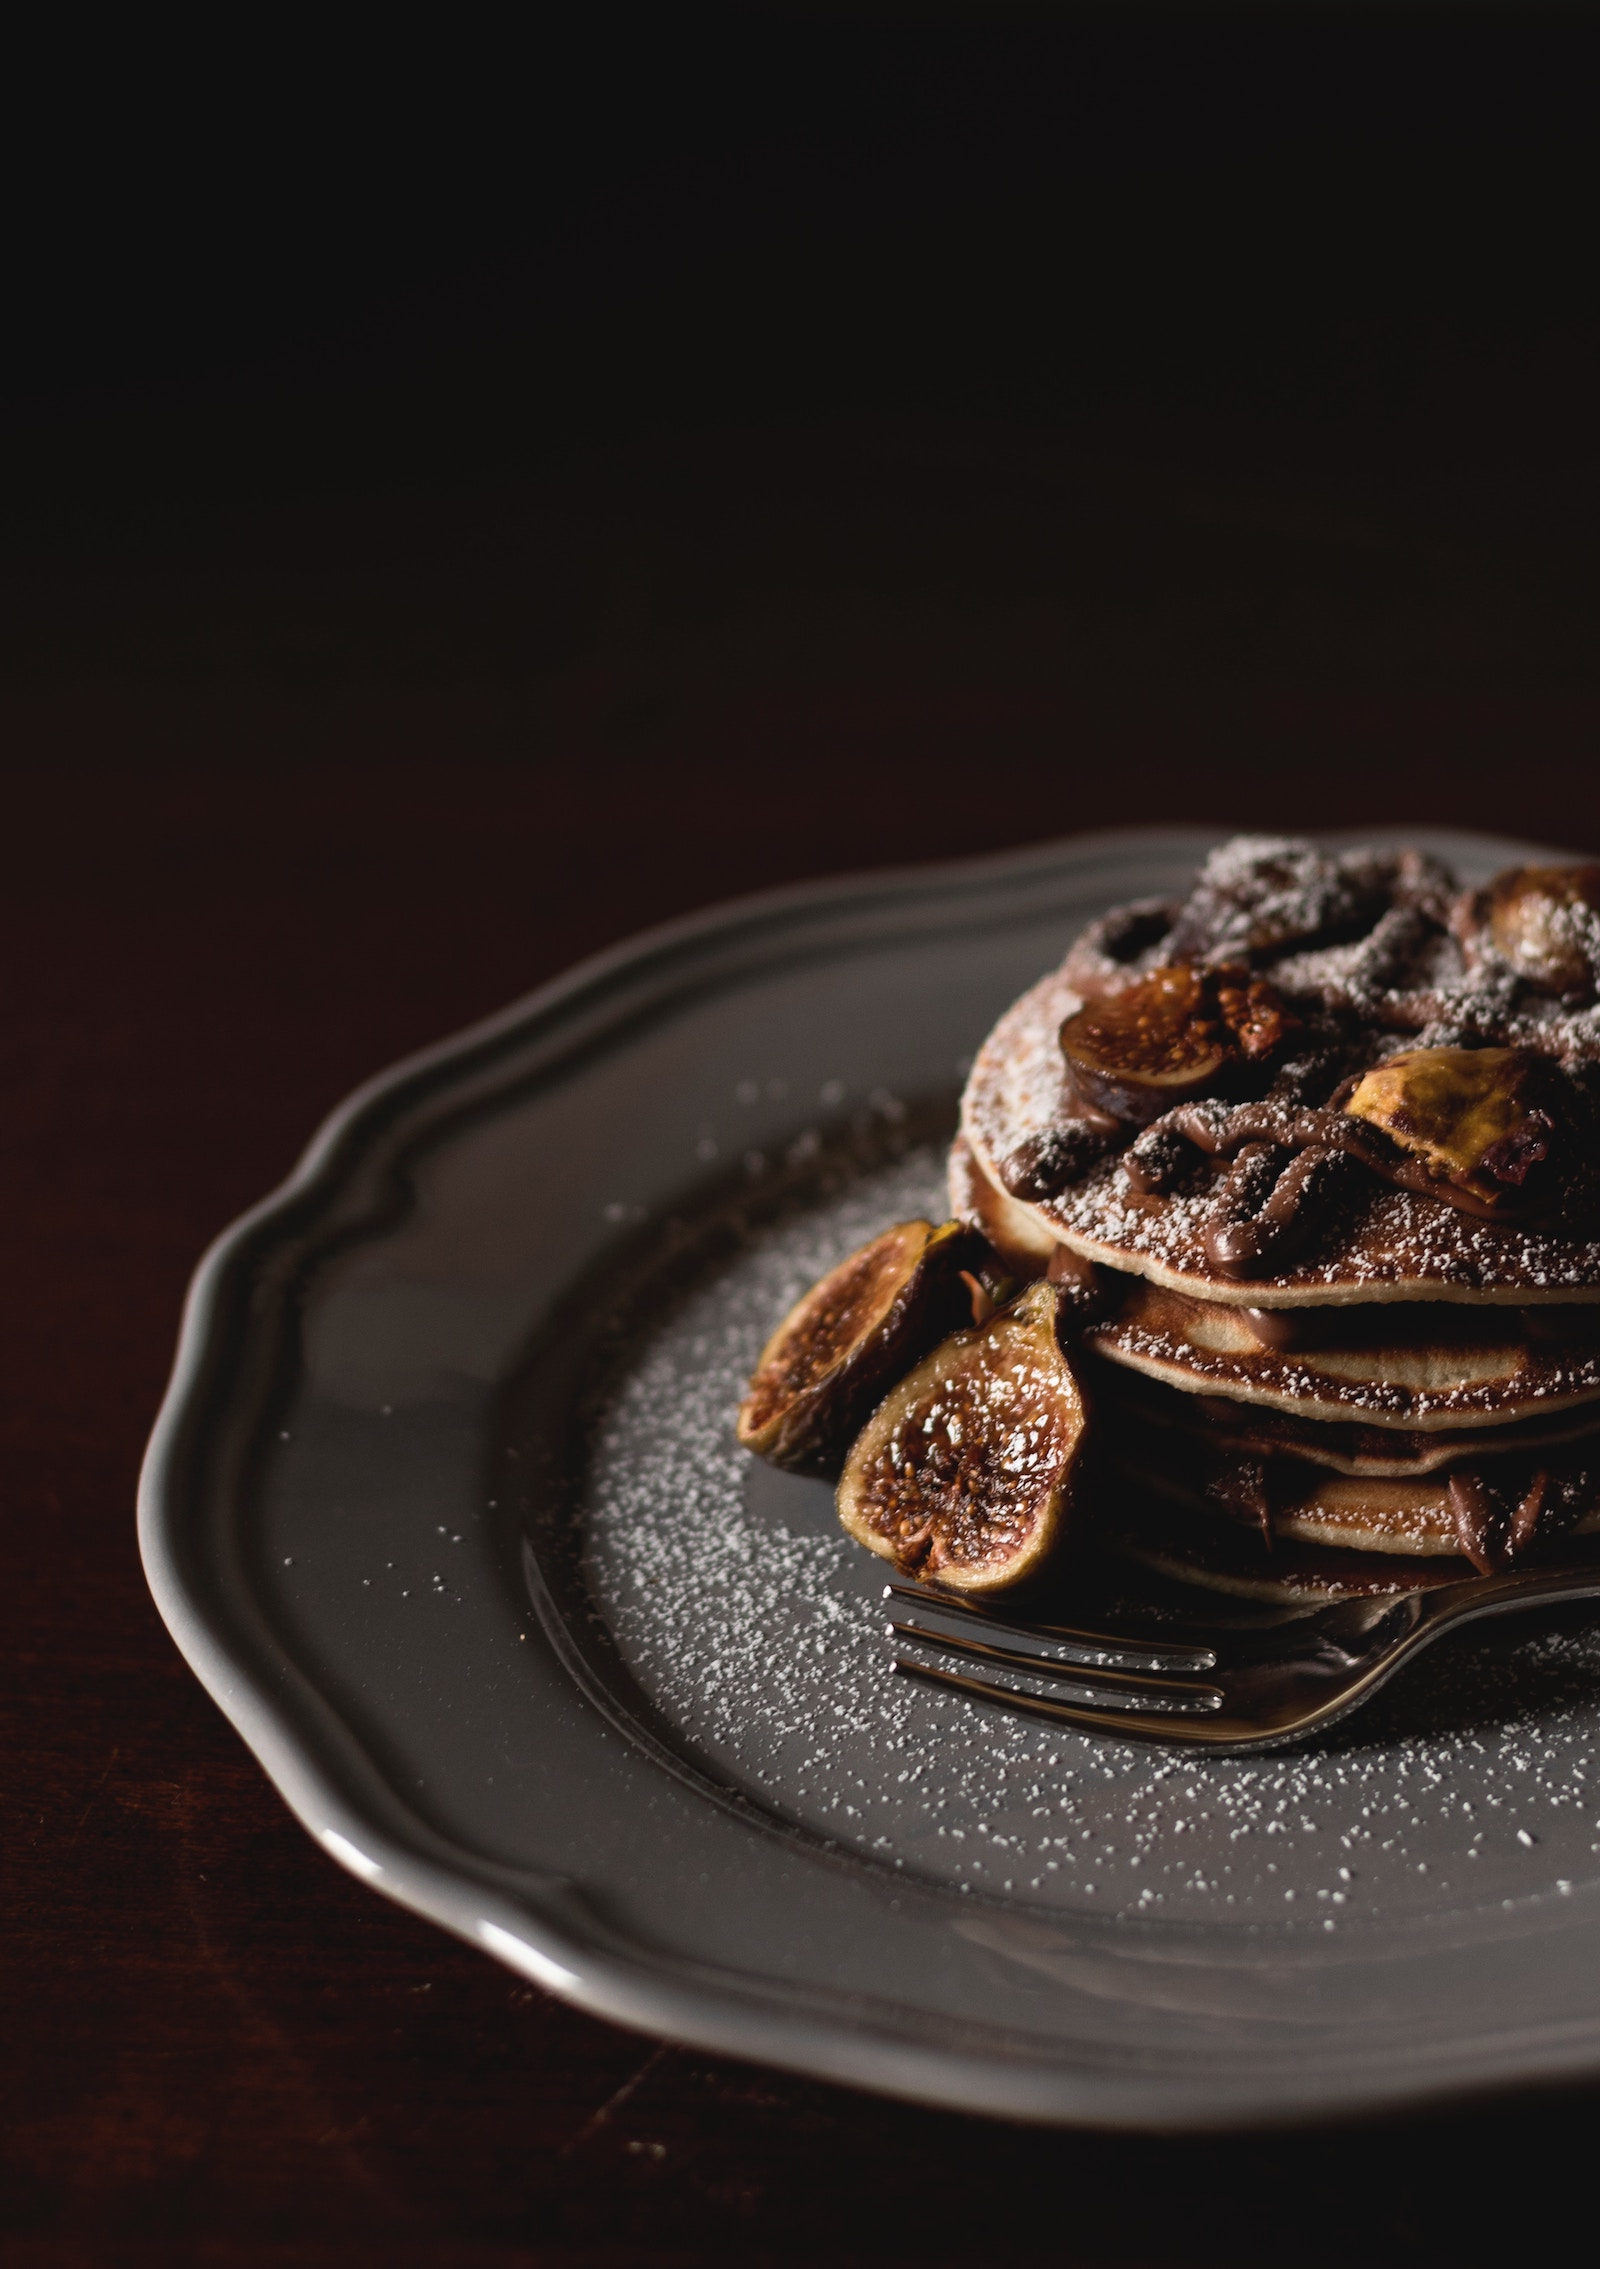 Schokoladen Protein Pancakes Rezept - Photo by Henry Be on Unsplash